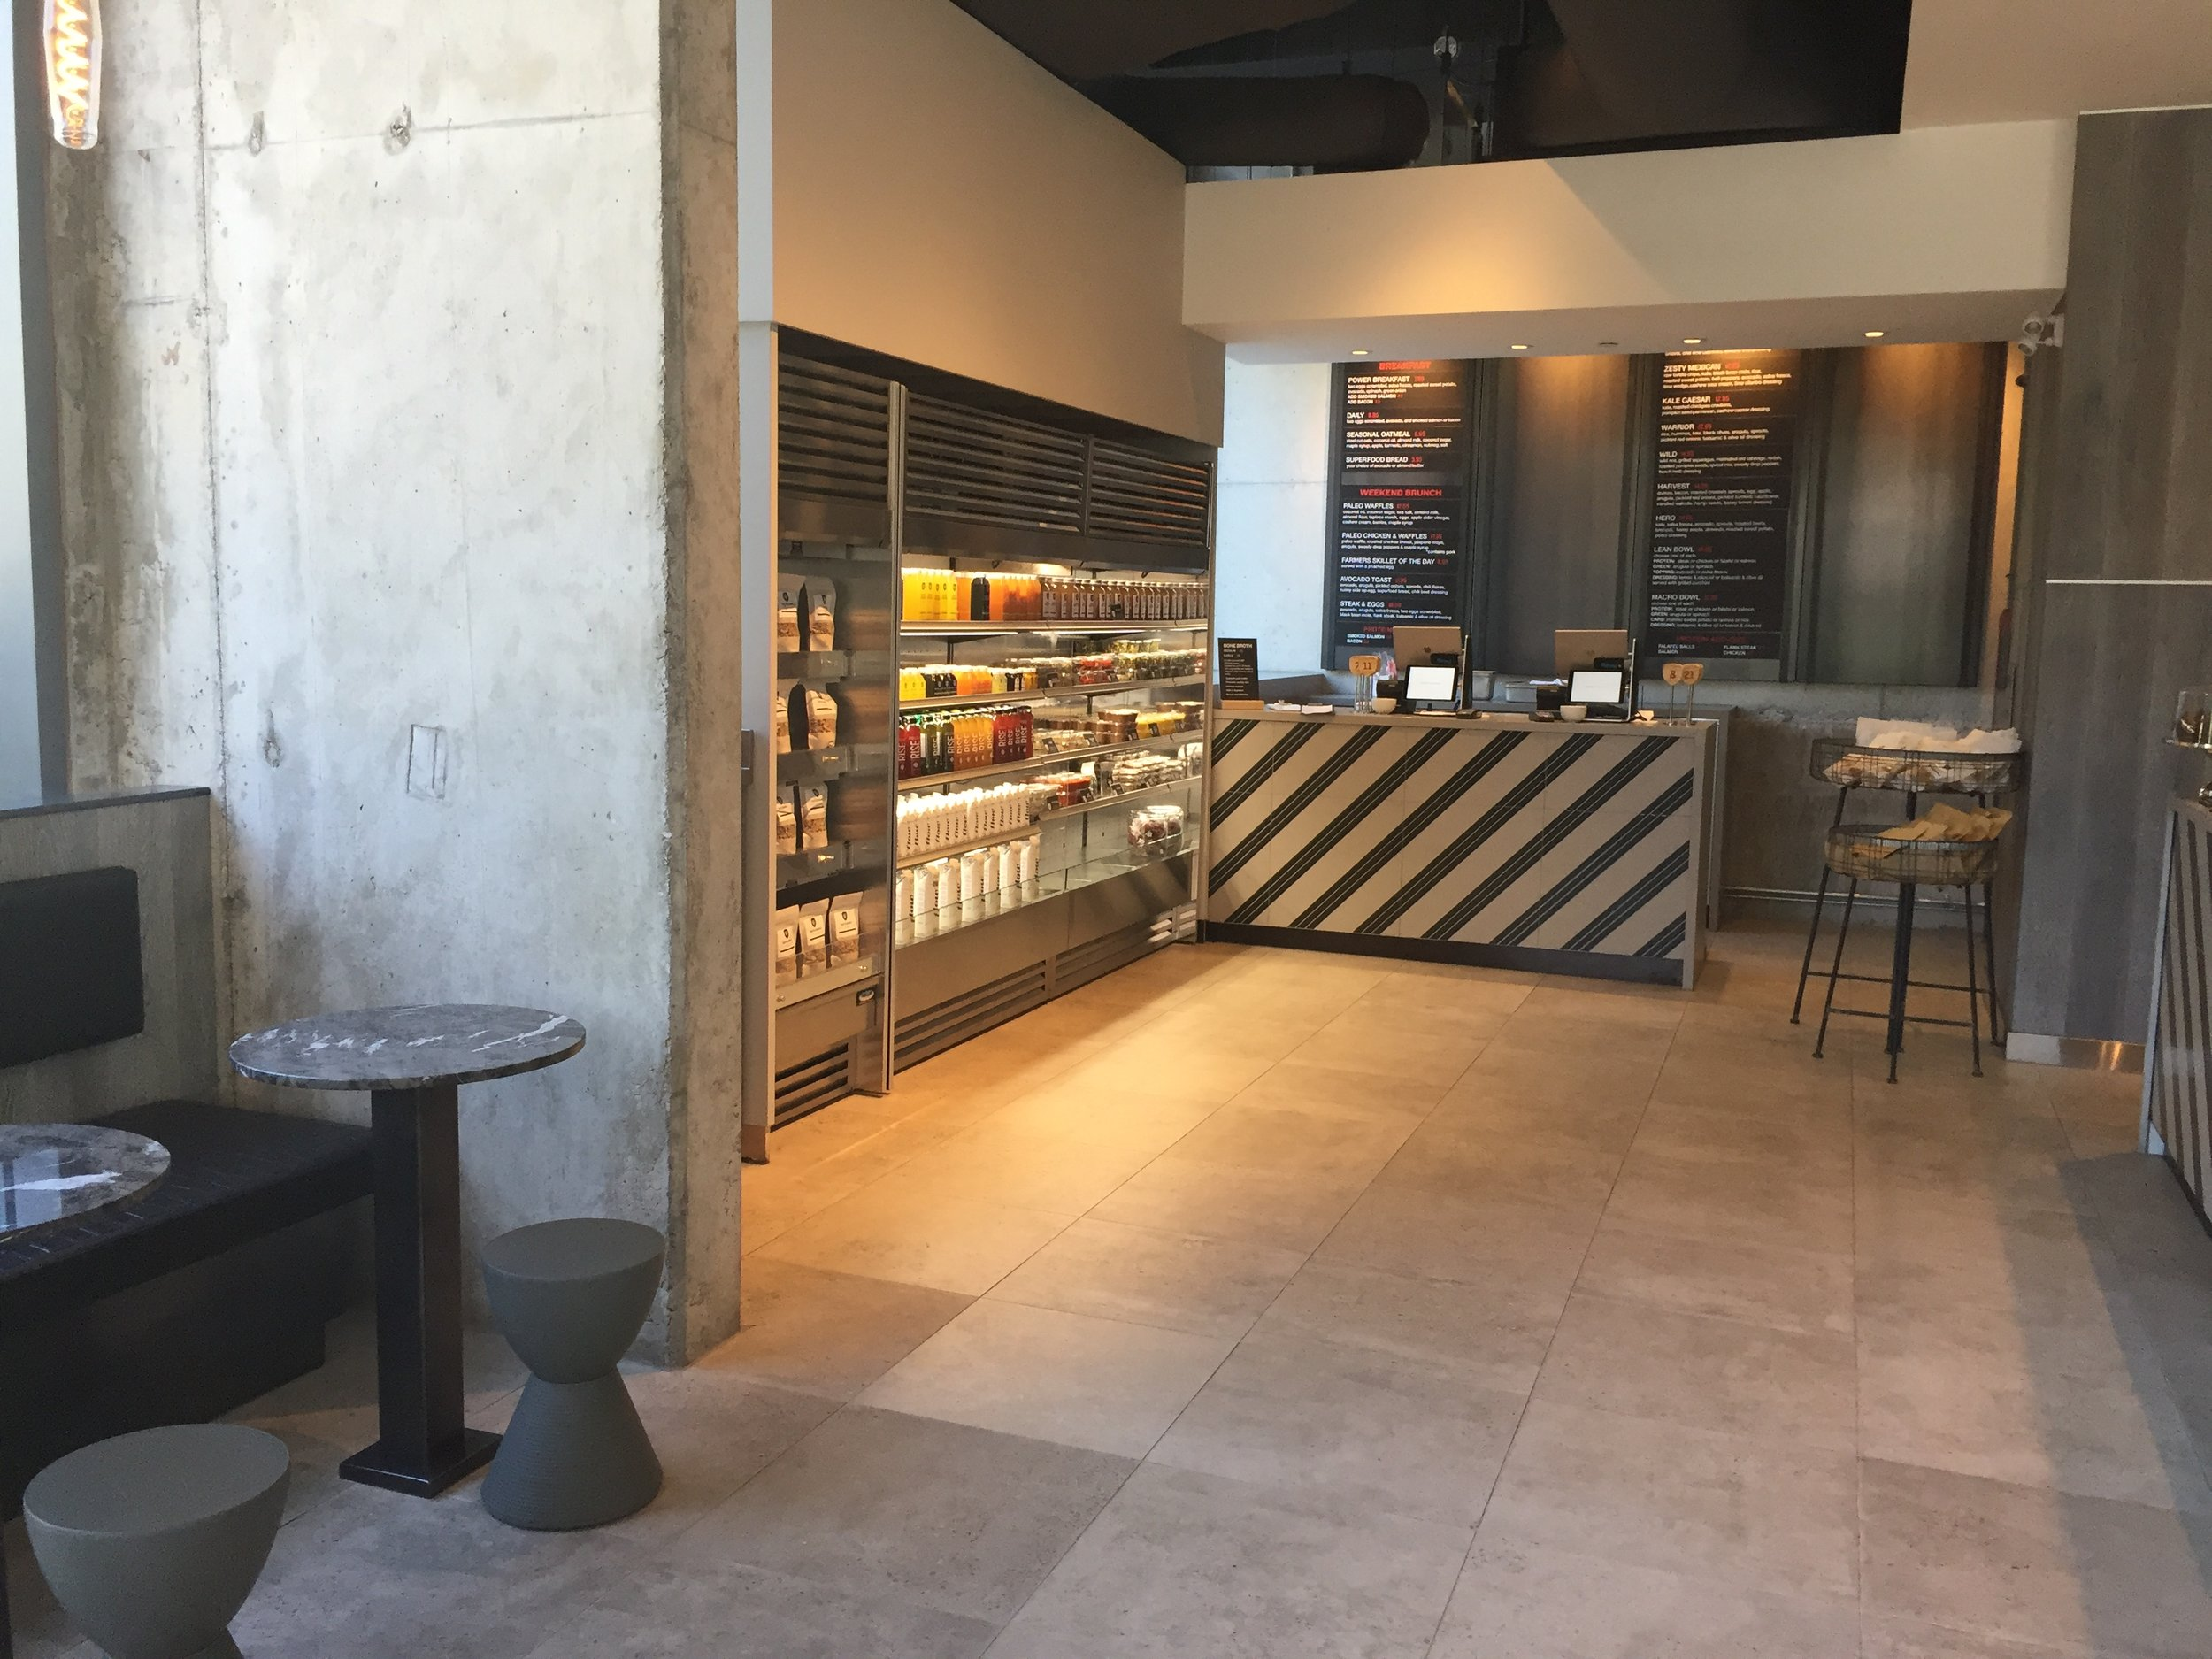 Picture of counter and menu in Impact Kitchen